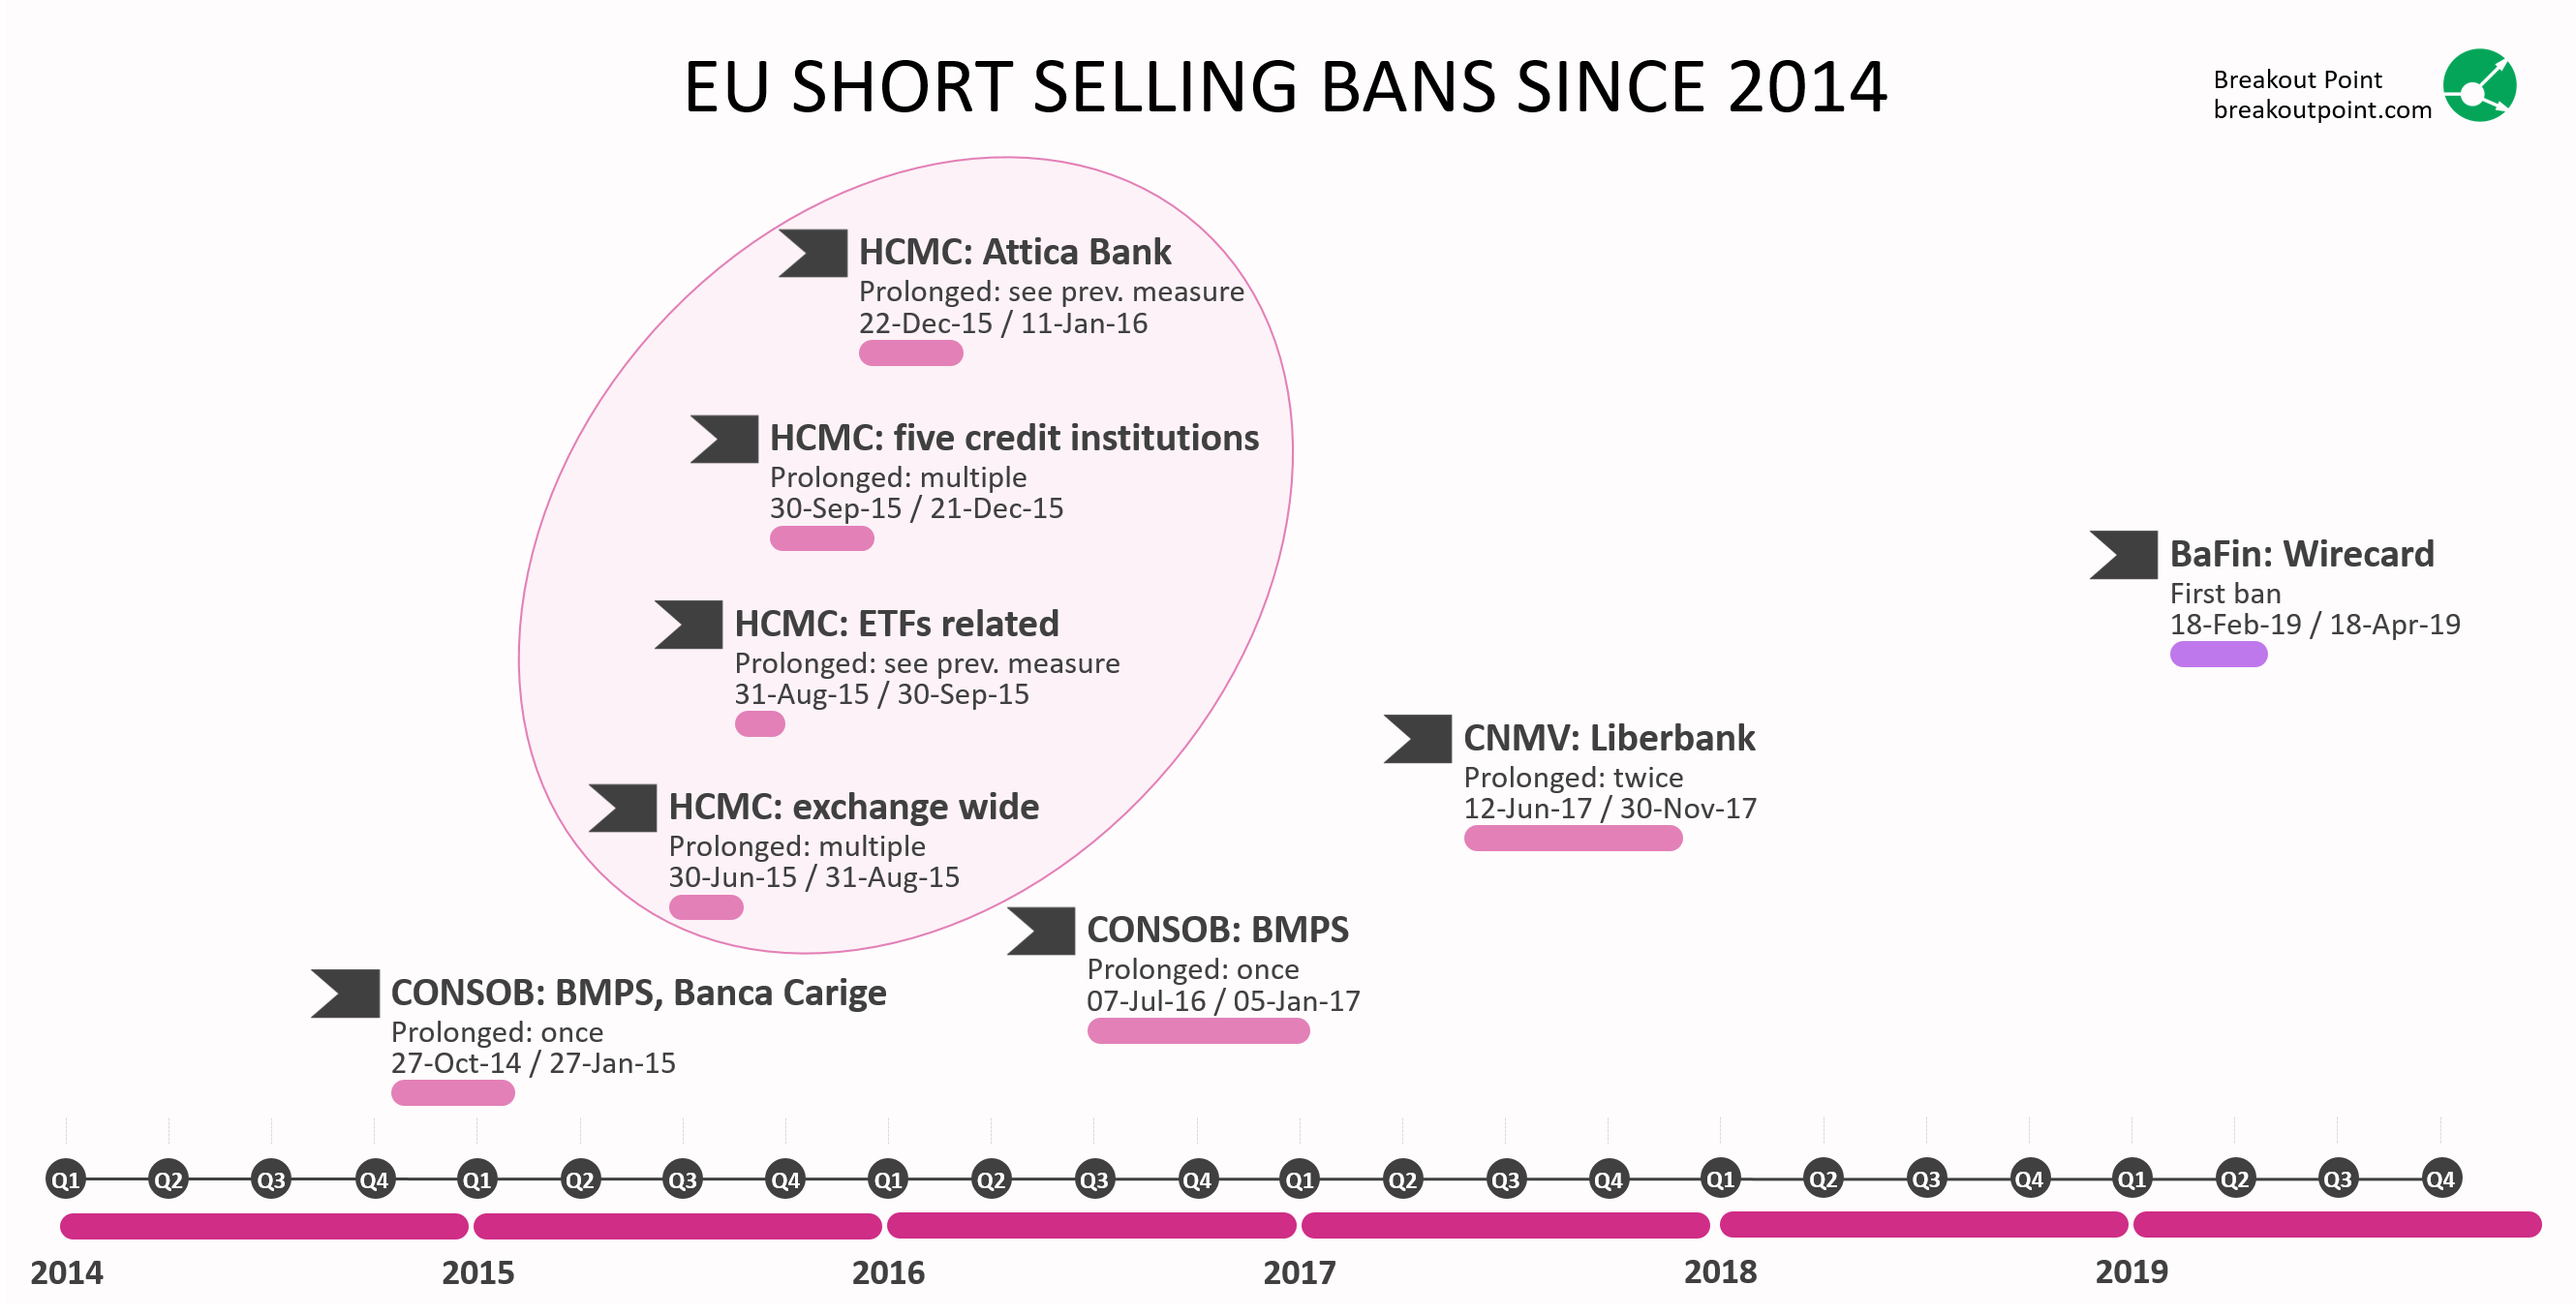 EU Short Selling Bans